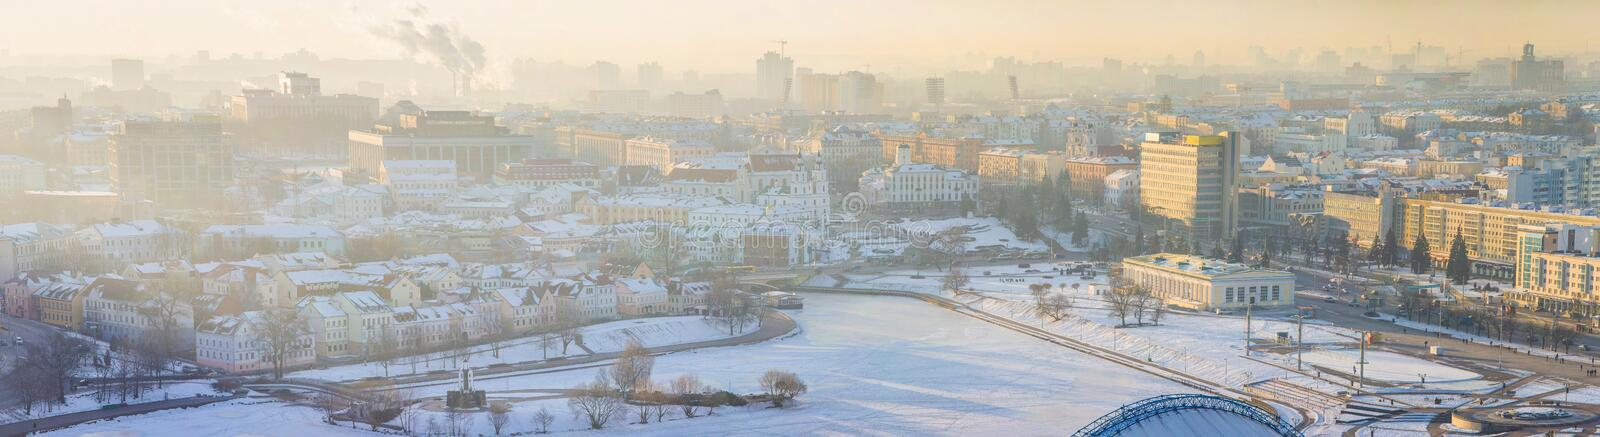 Panoramic view of Minsk downtown on early winter morning. Nemiga district and Trinity Suburb covered with thick snow stock images